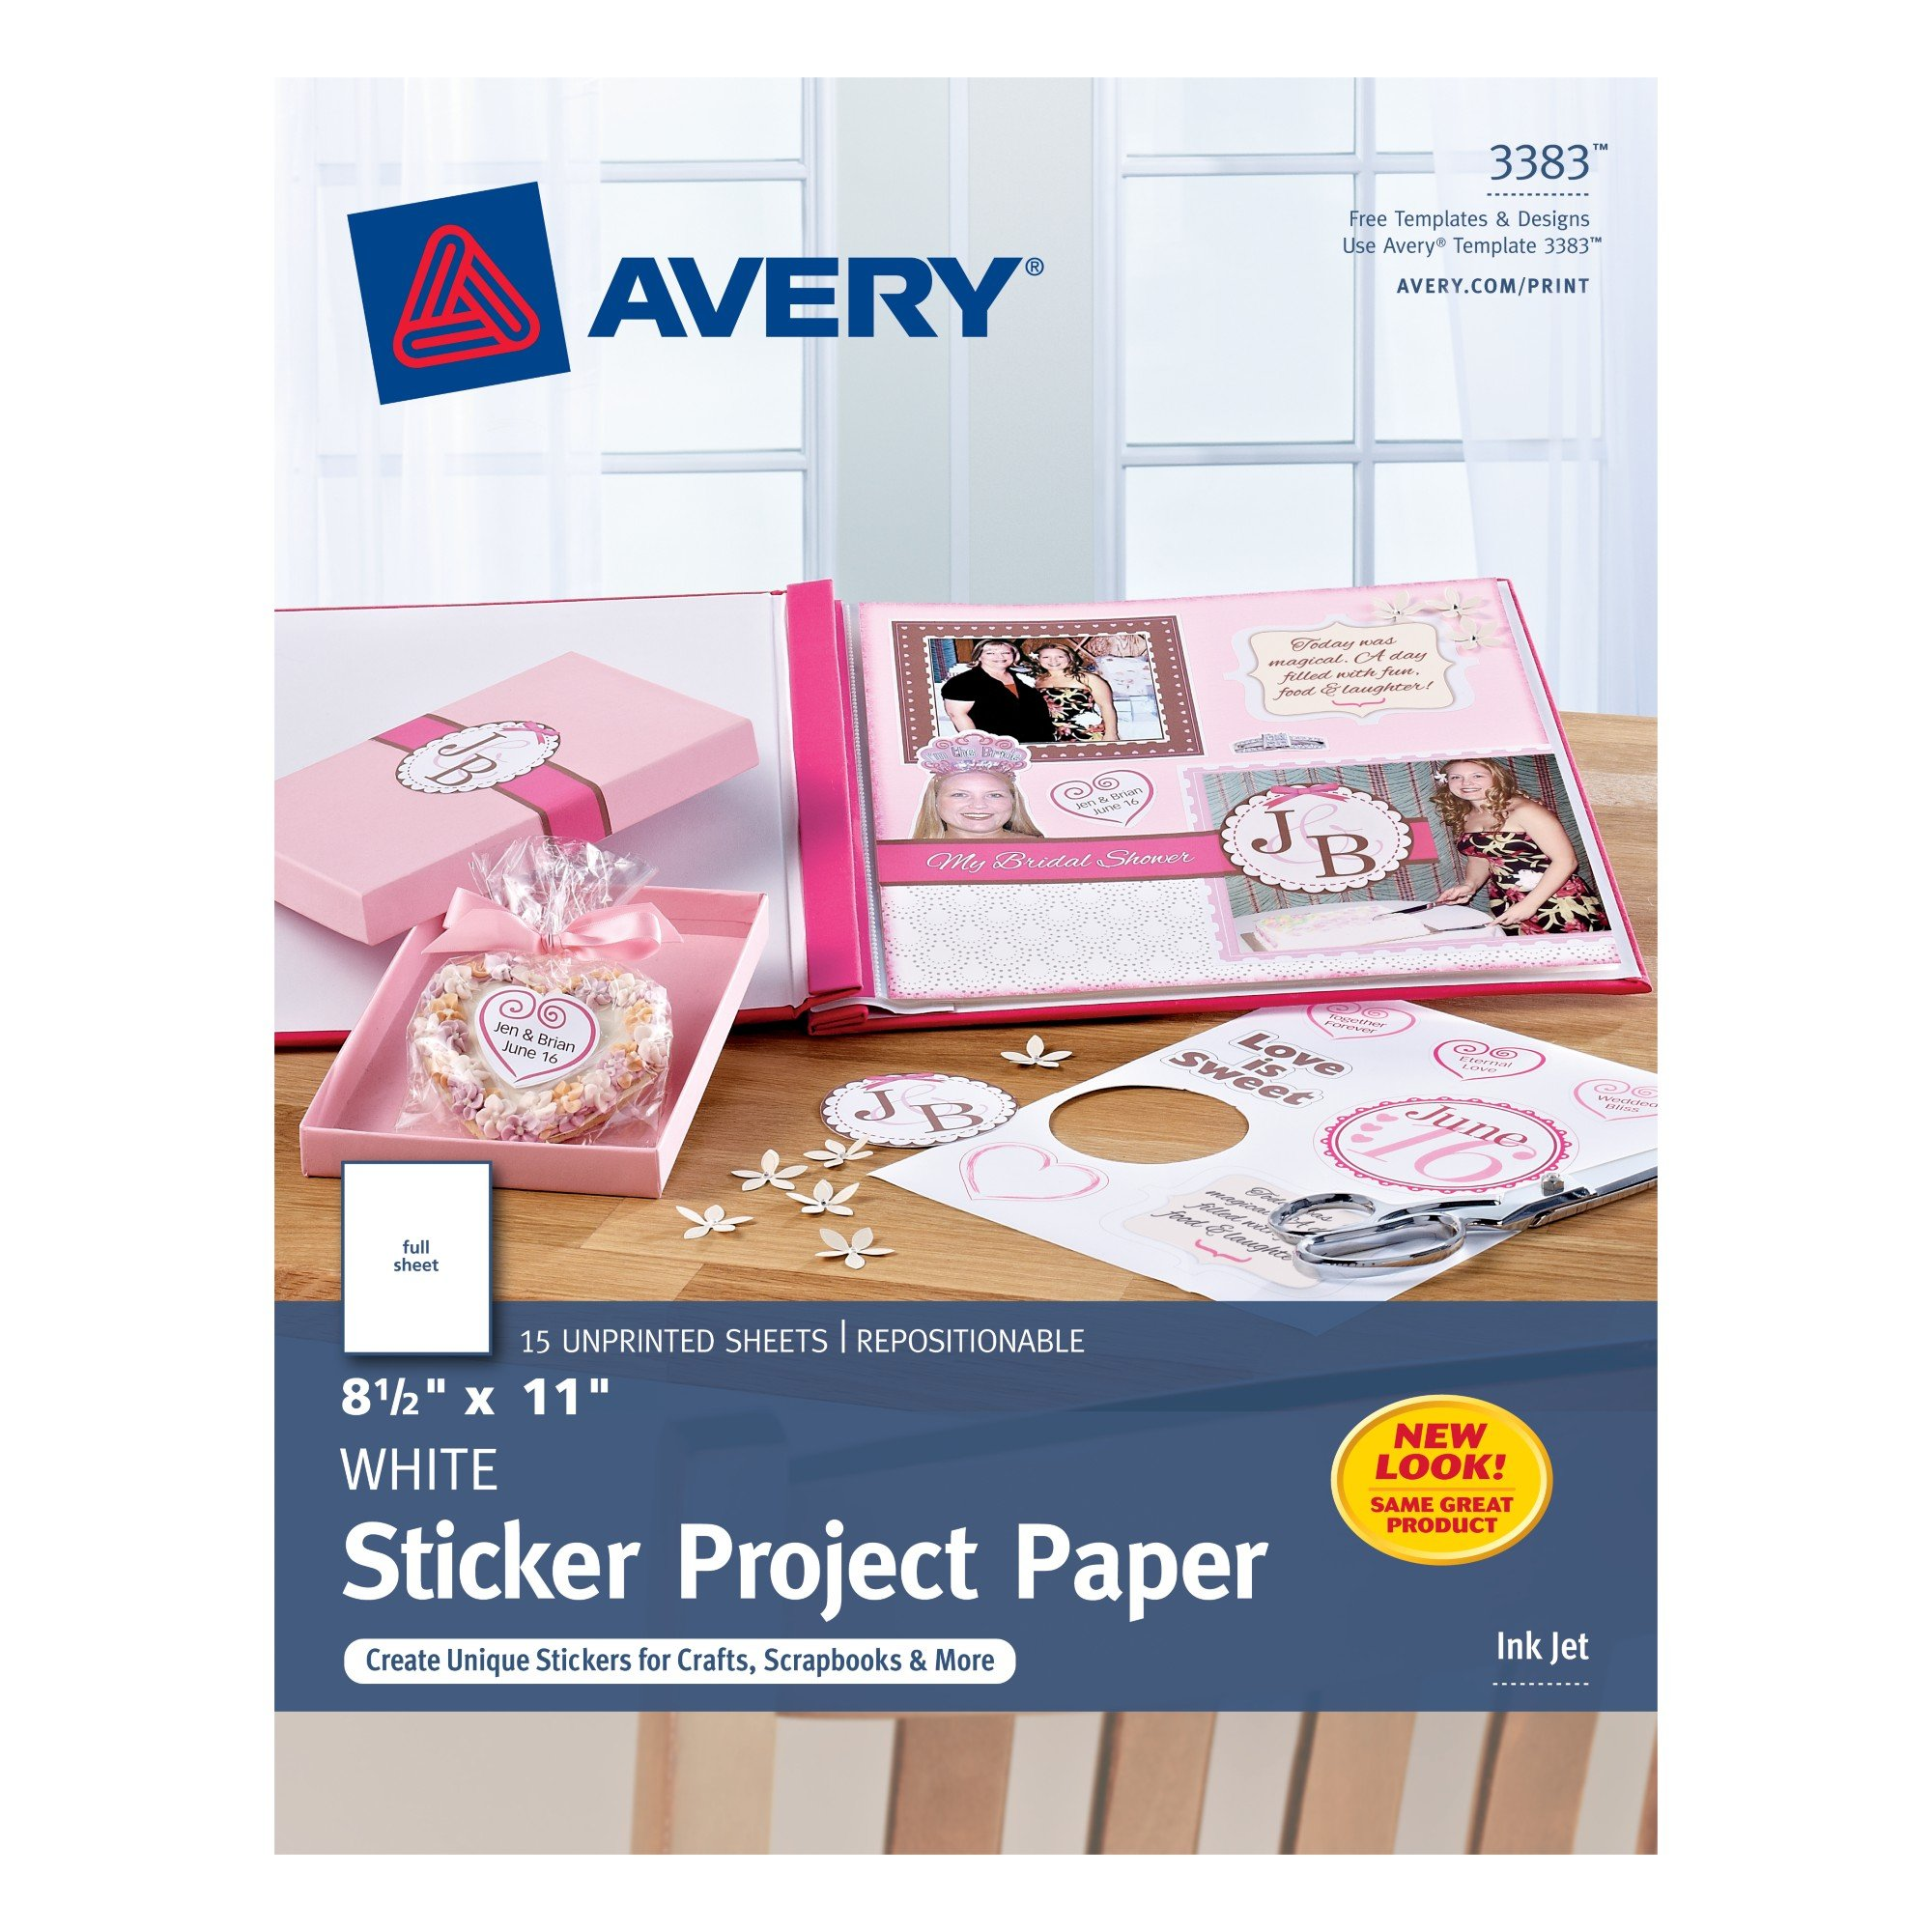 Avery 5007278203383 Sticker Project Paper, Removable Adhesive, 8-1/2'' x 11'', Pack of 15, Case Pack of 6 (3383)